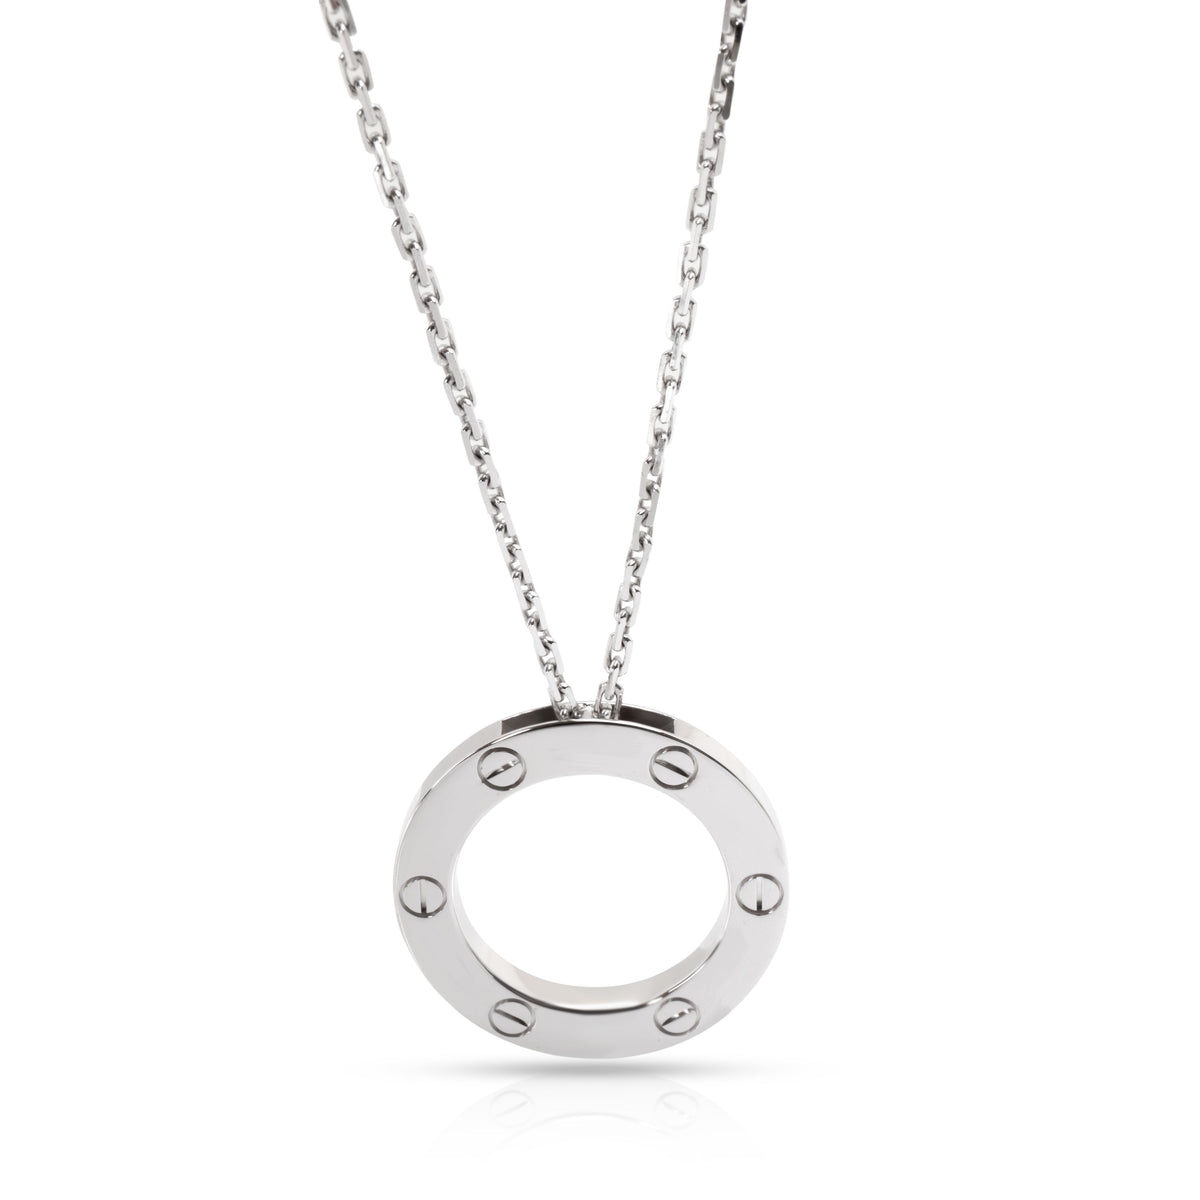 Cartier Love Necklace in 18K White Gold